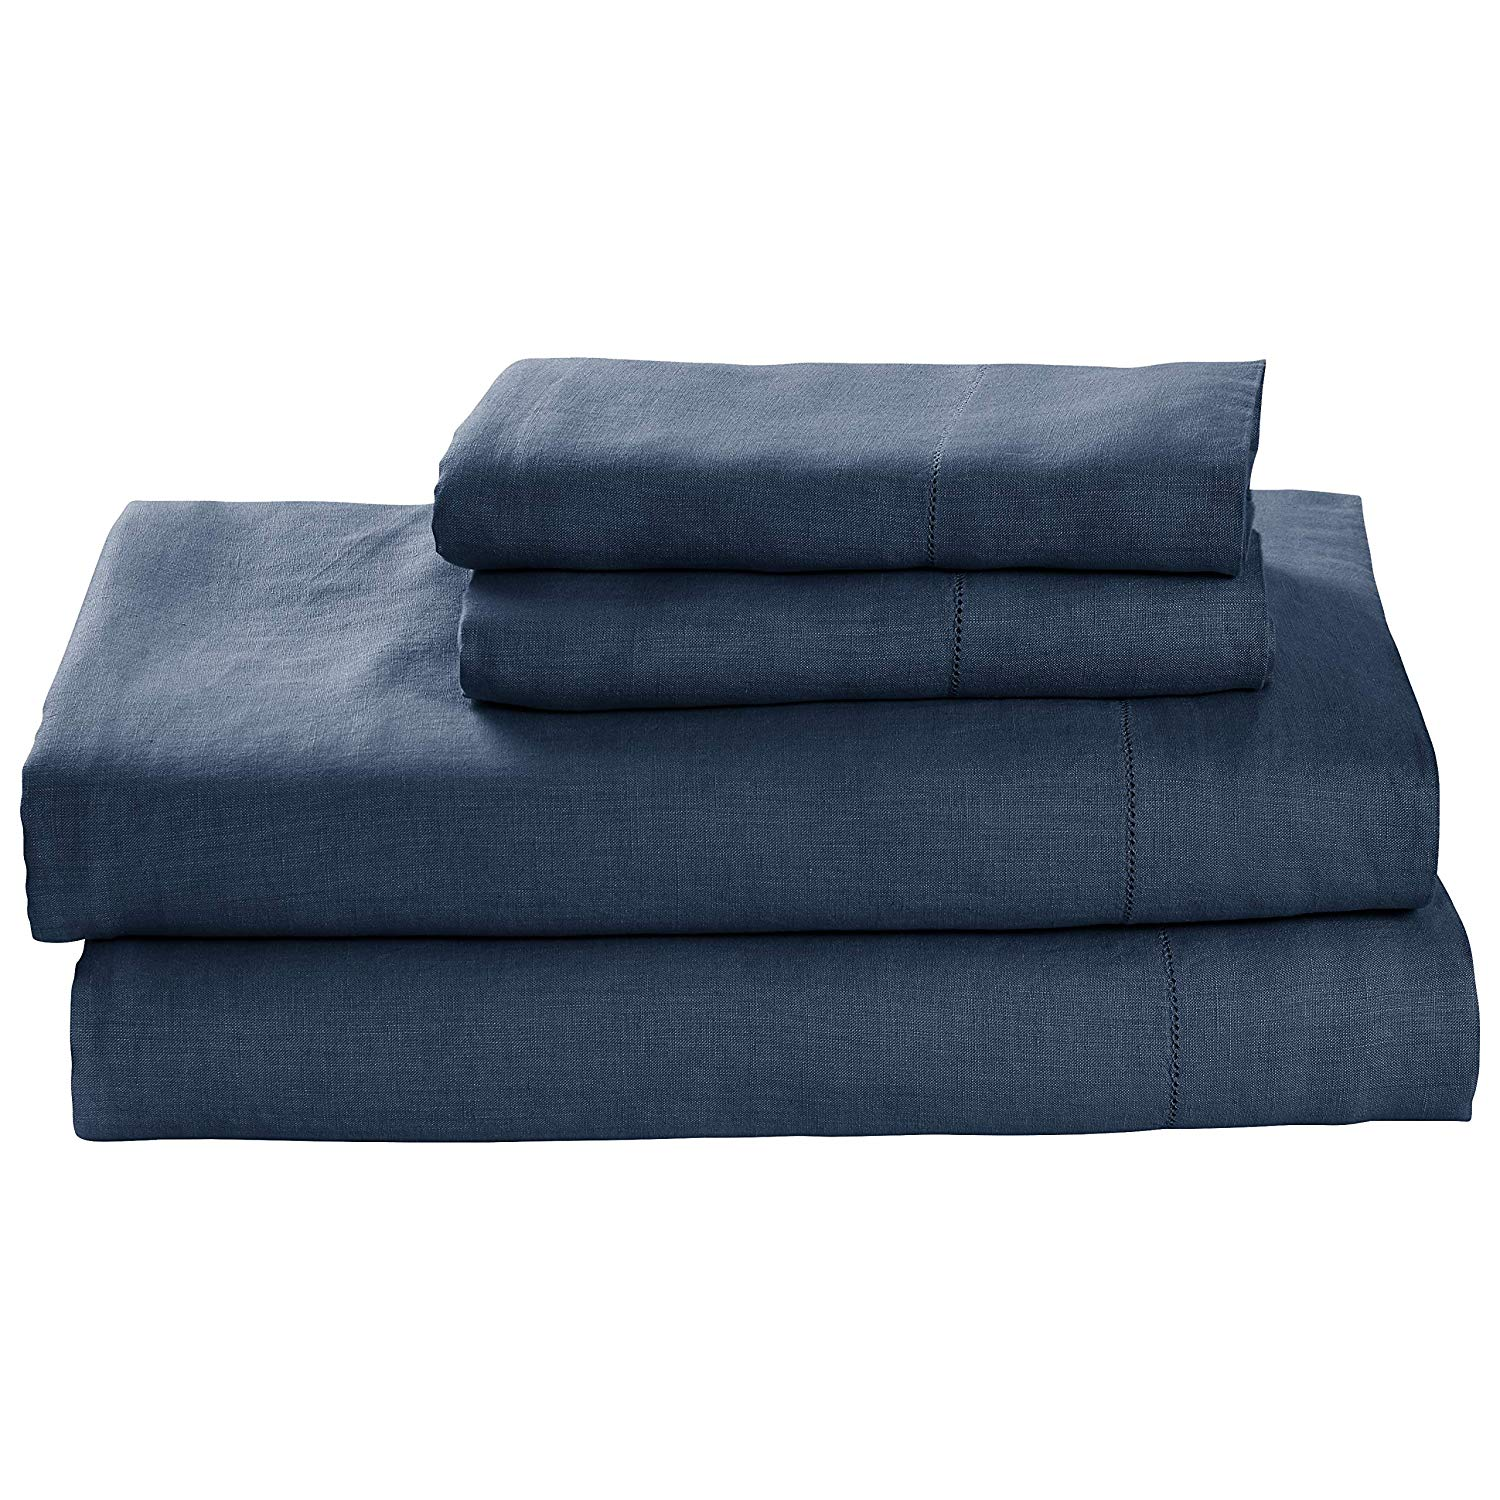 Stone Beam Best Linen Sheets Review By Www Snoremagazine